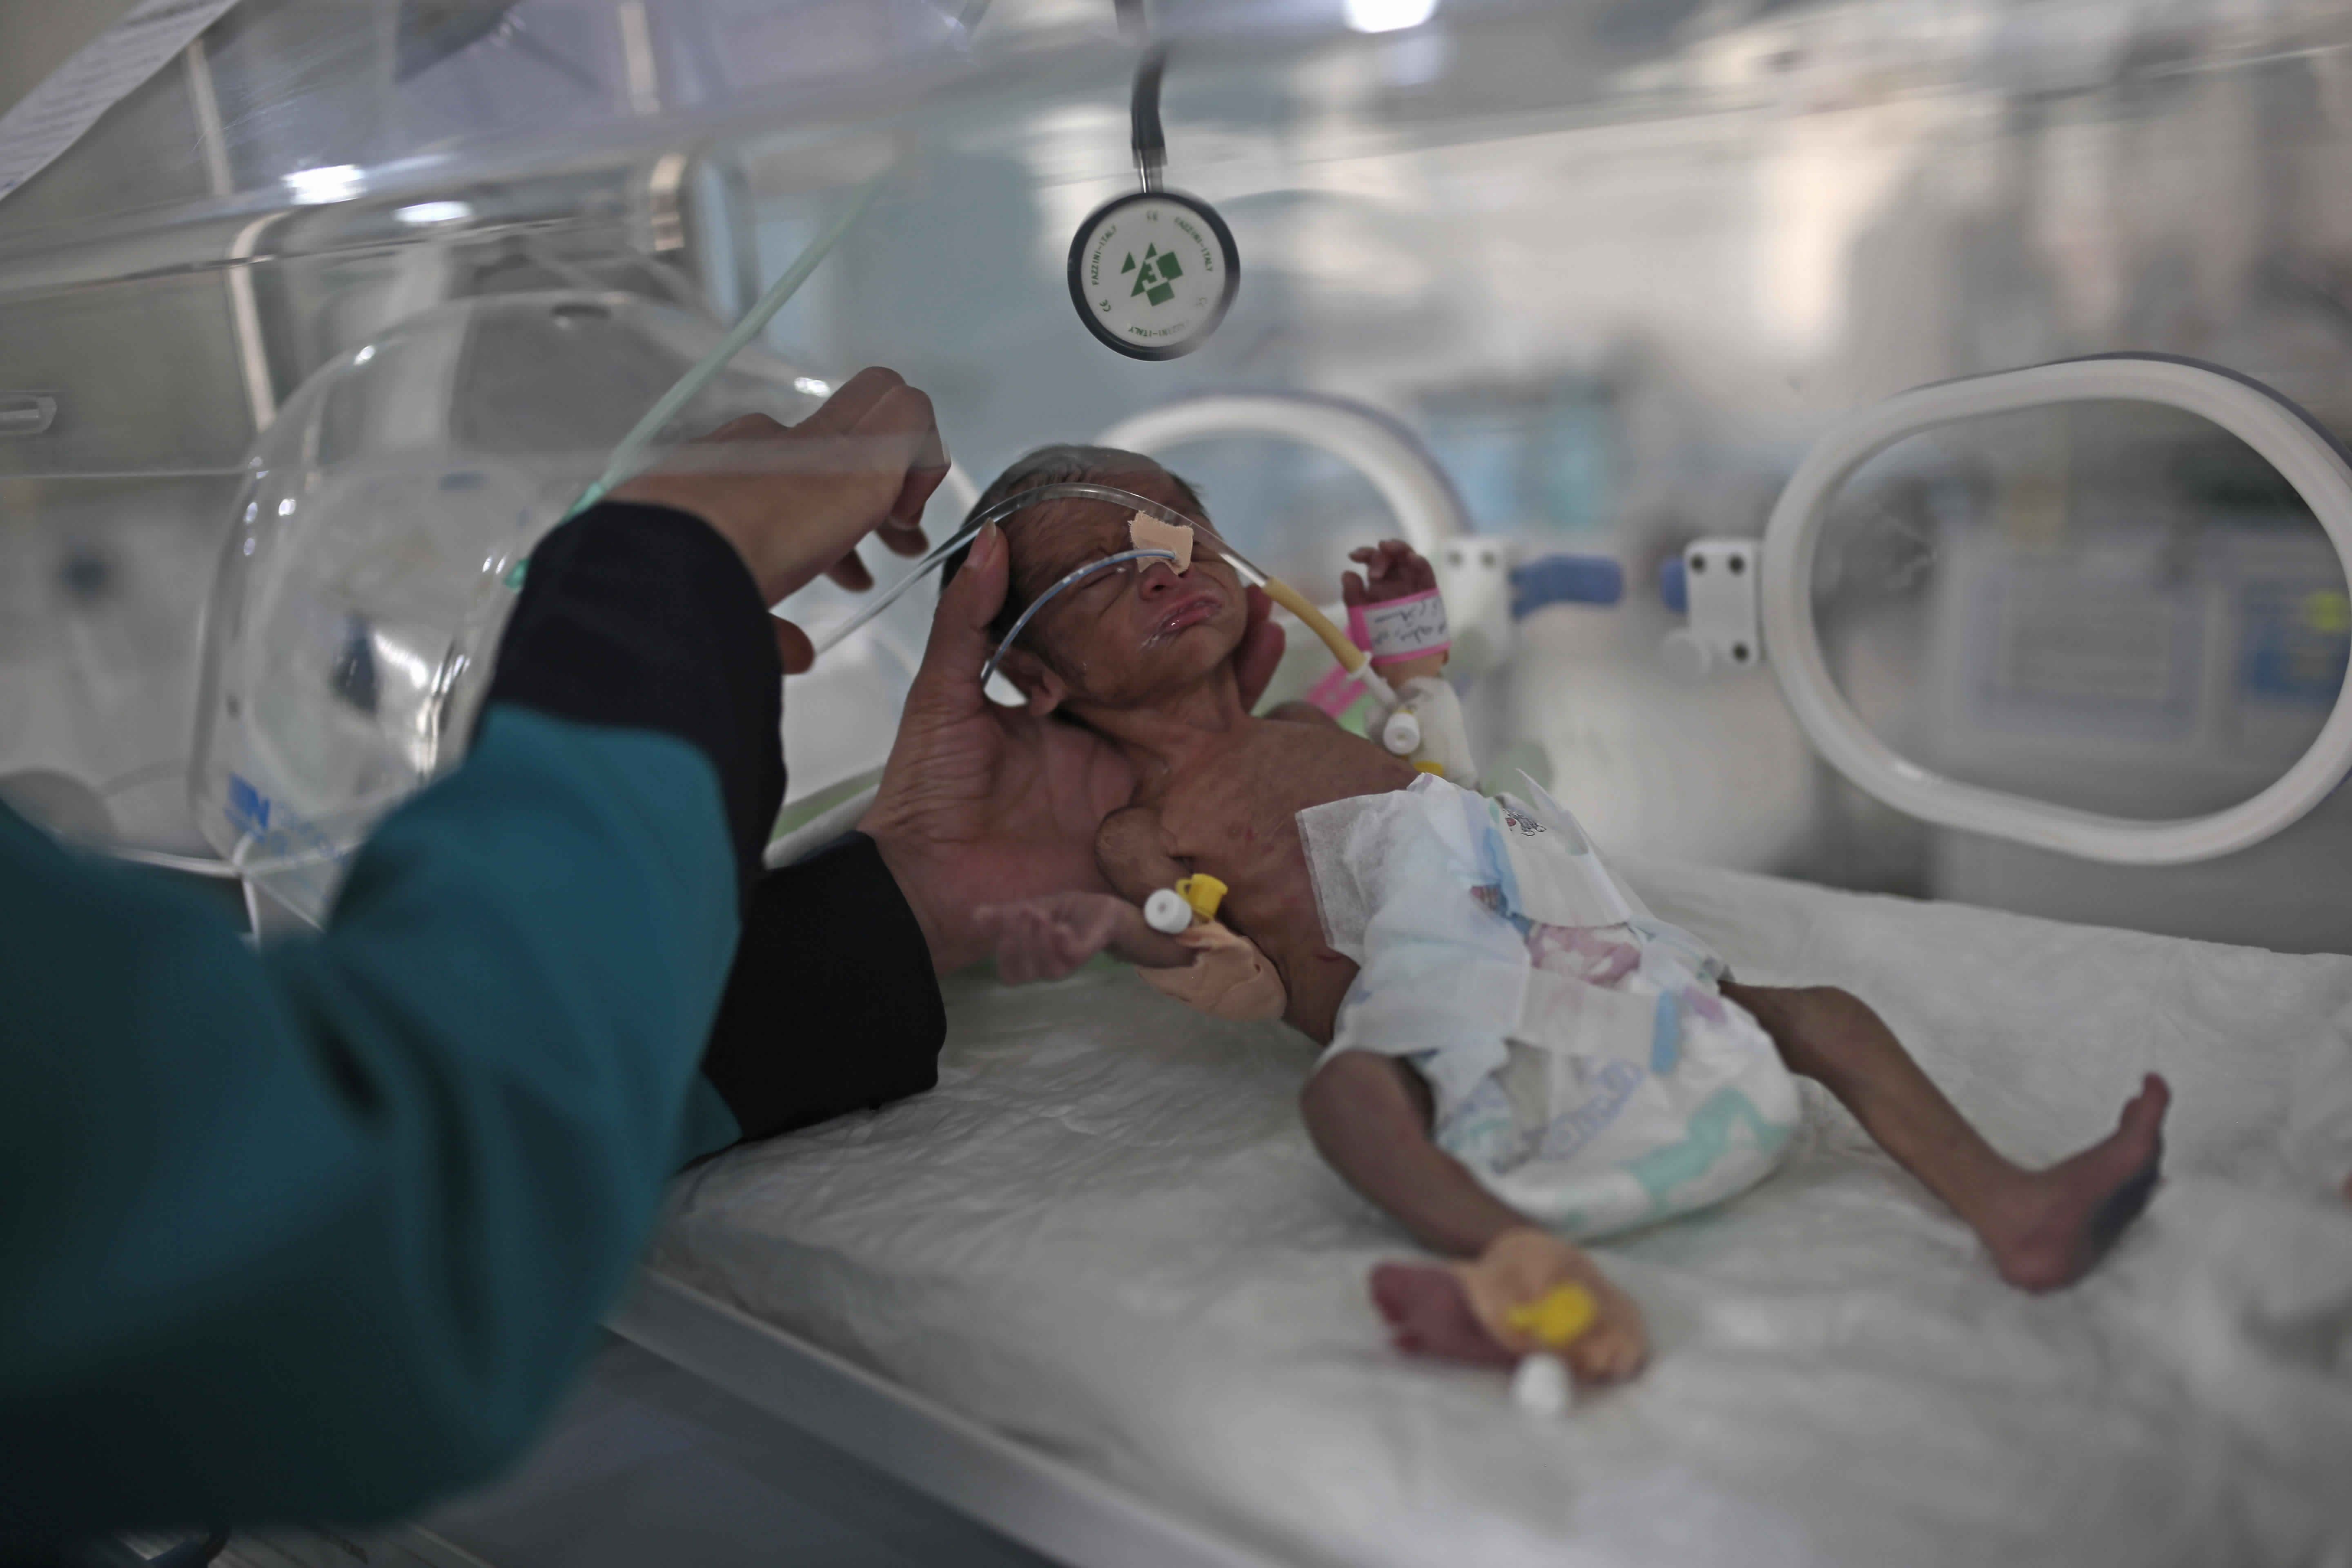 """FILE - In this June 27, 2020 file photo, a medic checks a malnourished newborn baby inside an incubator at Al-Sabeen hospital in Sanaa, Yemen. Human Rights Watch warned Monday, Sept. 14, 2020 that warring parties in Yemen's yearslong conflict are """"severely restricting"""" the delivery of desperately needed aid as the country slides toward famine amid the coronavirus pandemic. (AP Photo/Hani Mohammed, File)"""